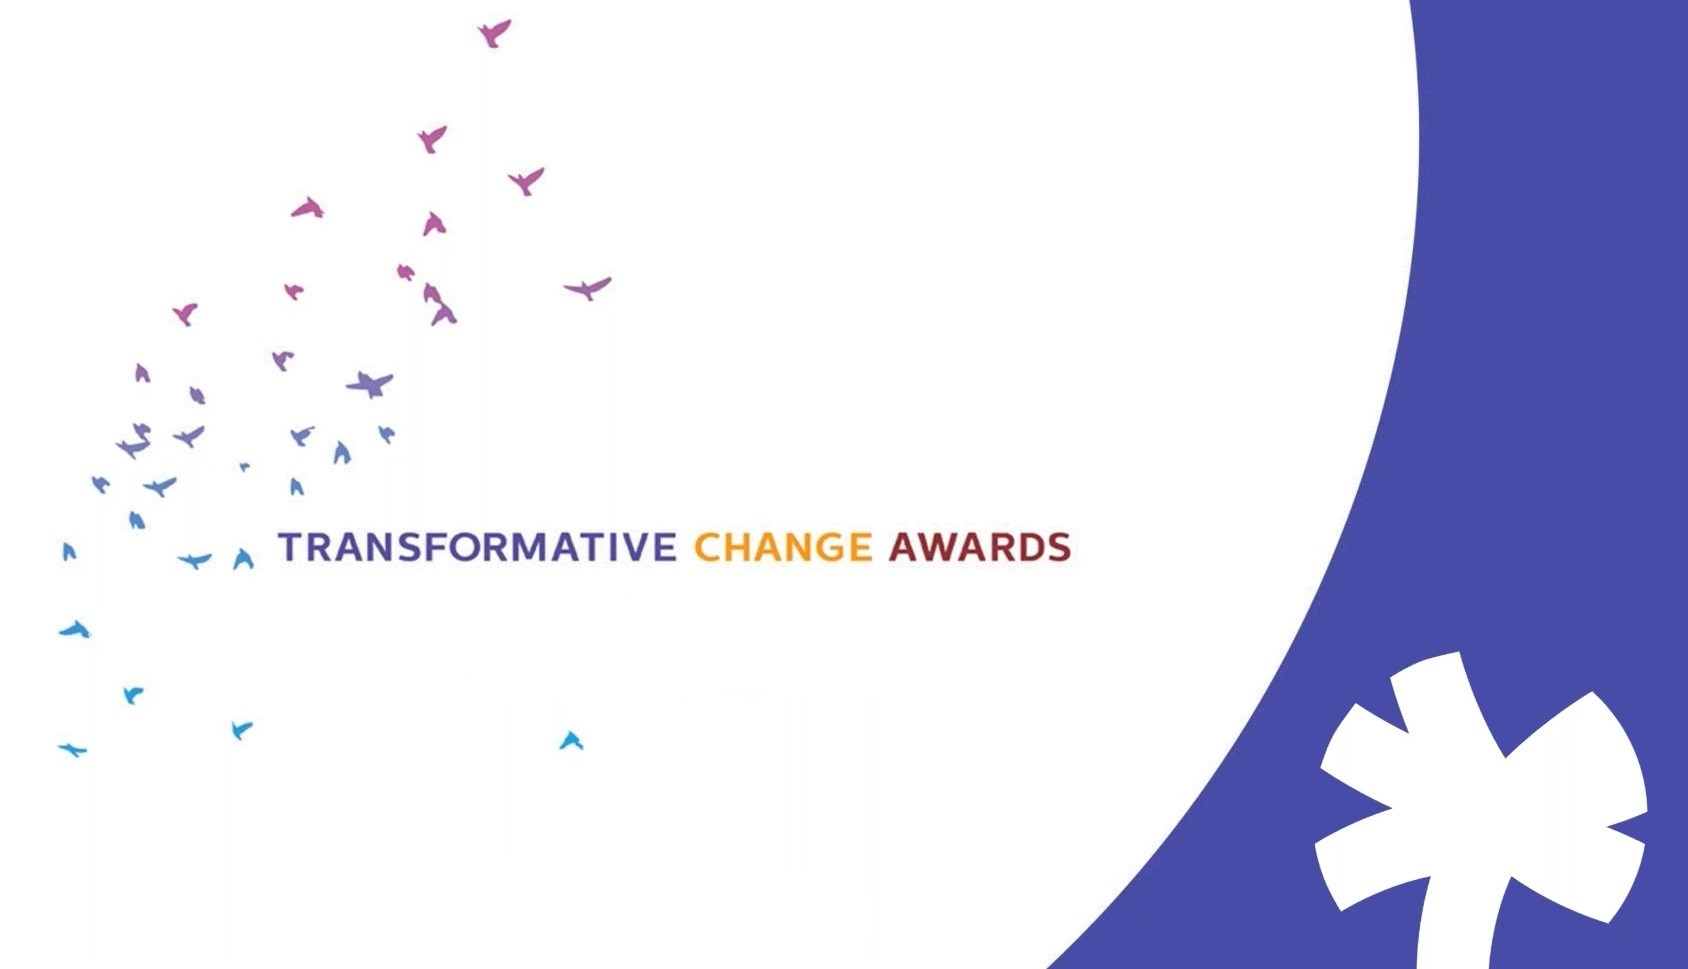 Transformative Change Awards with banner graphics of birds and Alliance logo in white